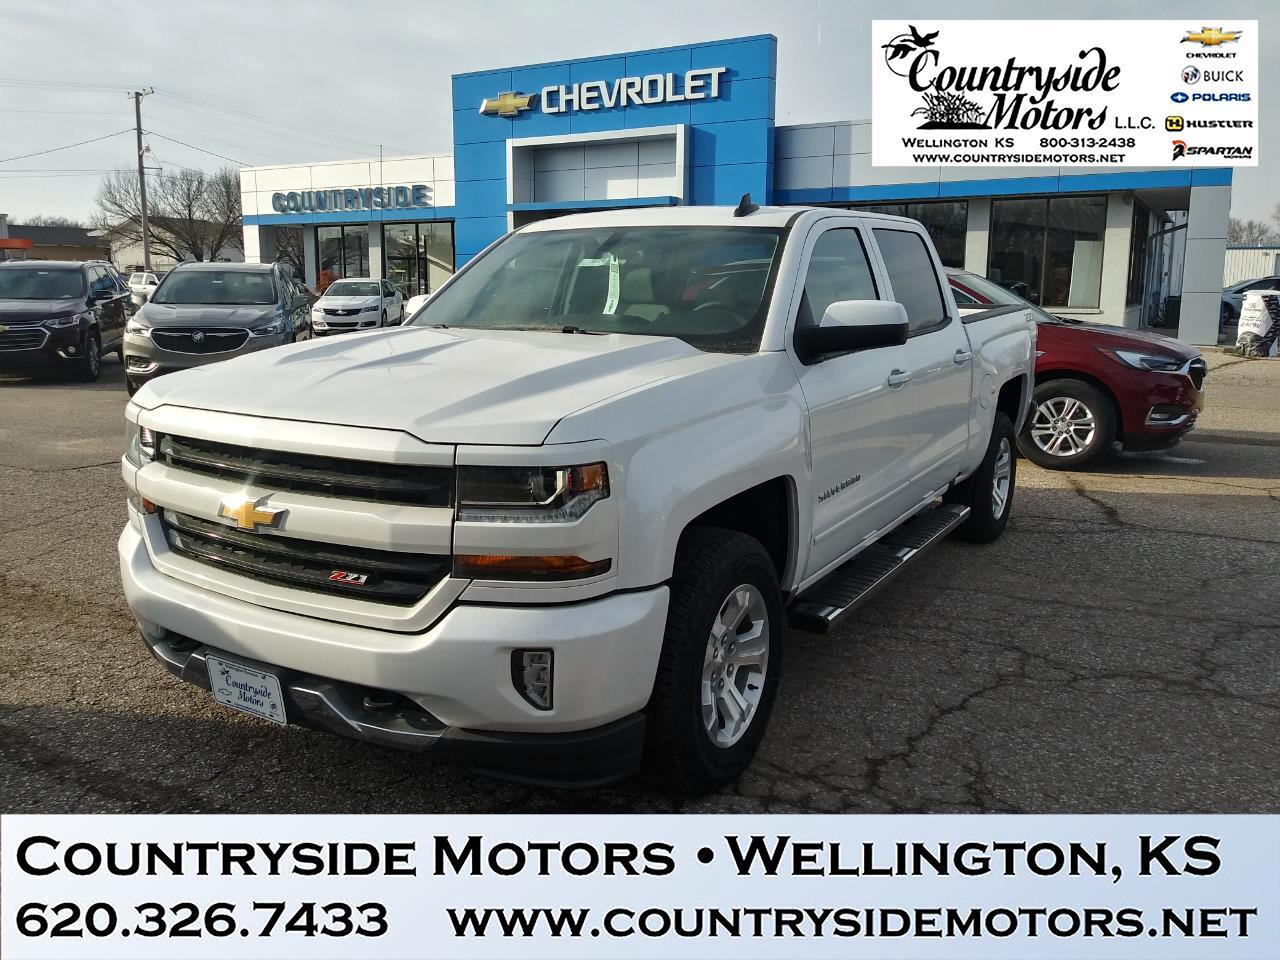 2018 Chevrolet Silverado 1500 Z71 4WD CREW CAB LT ALL STAR EDITION